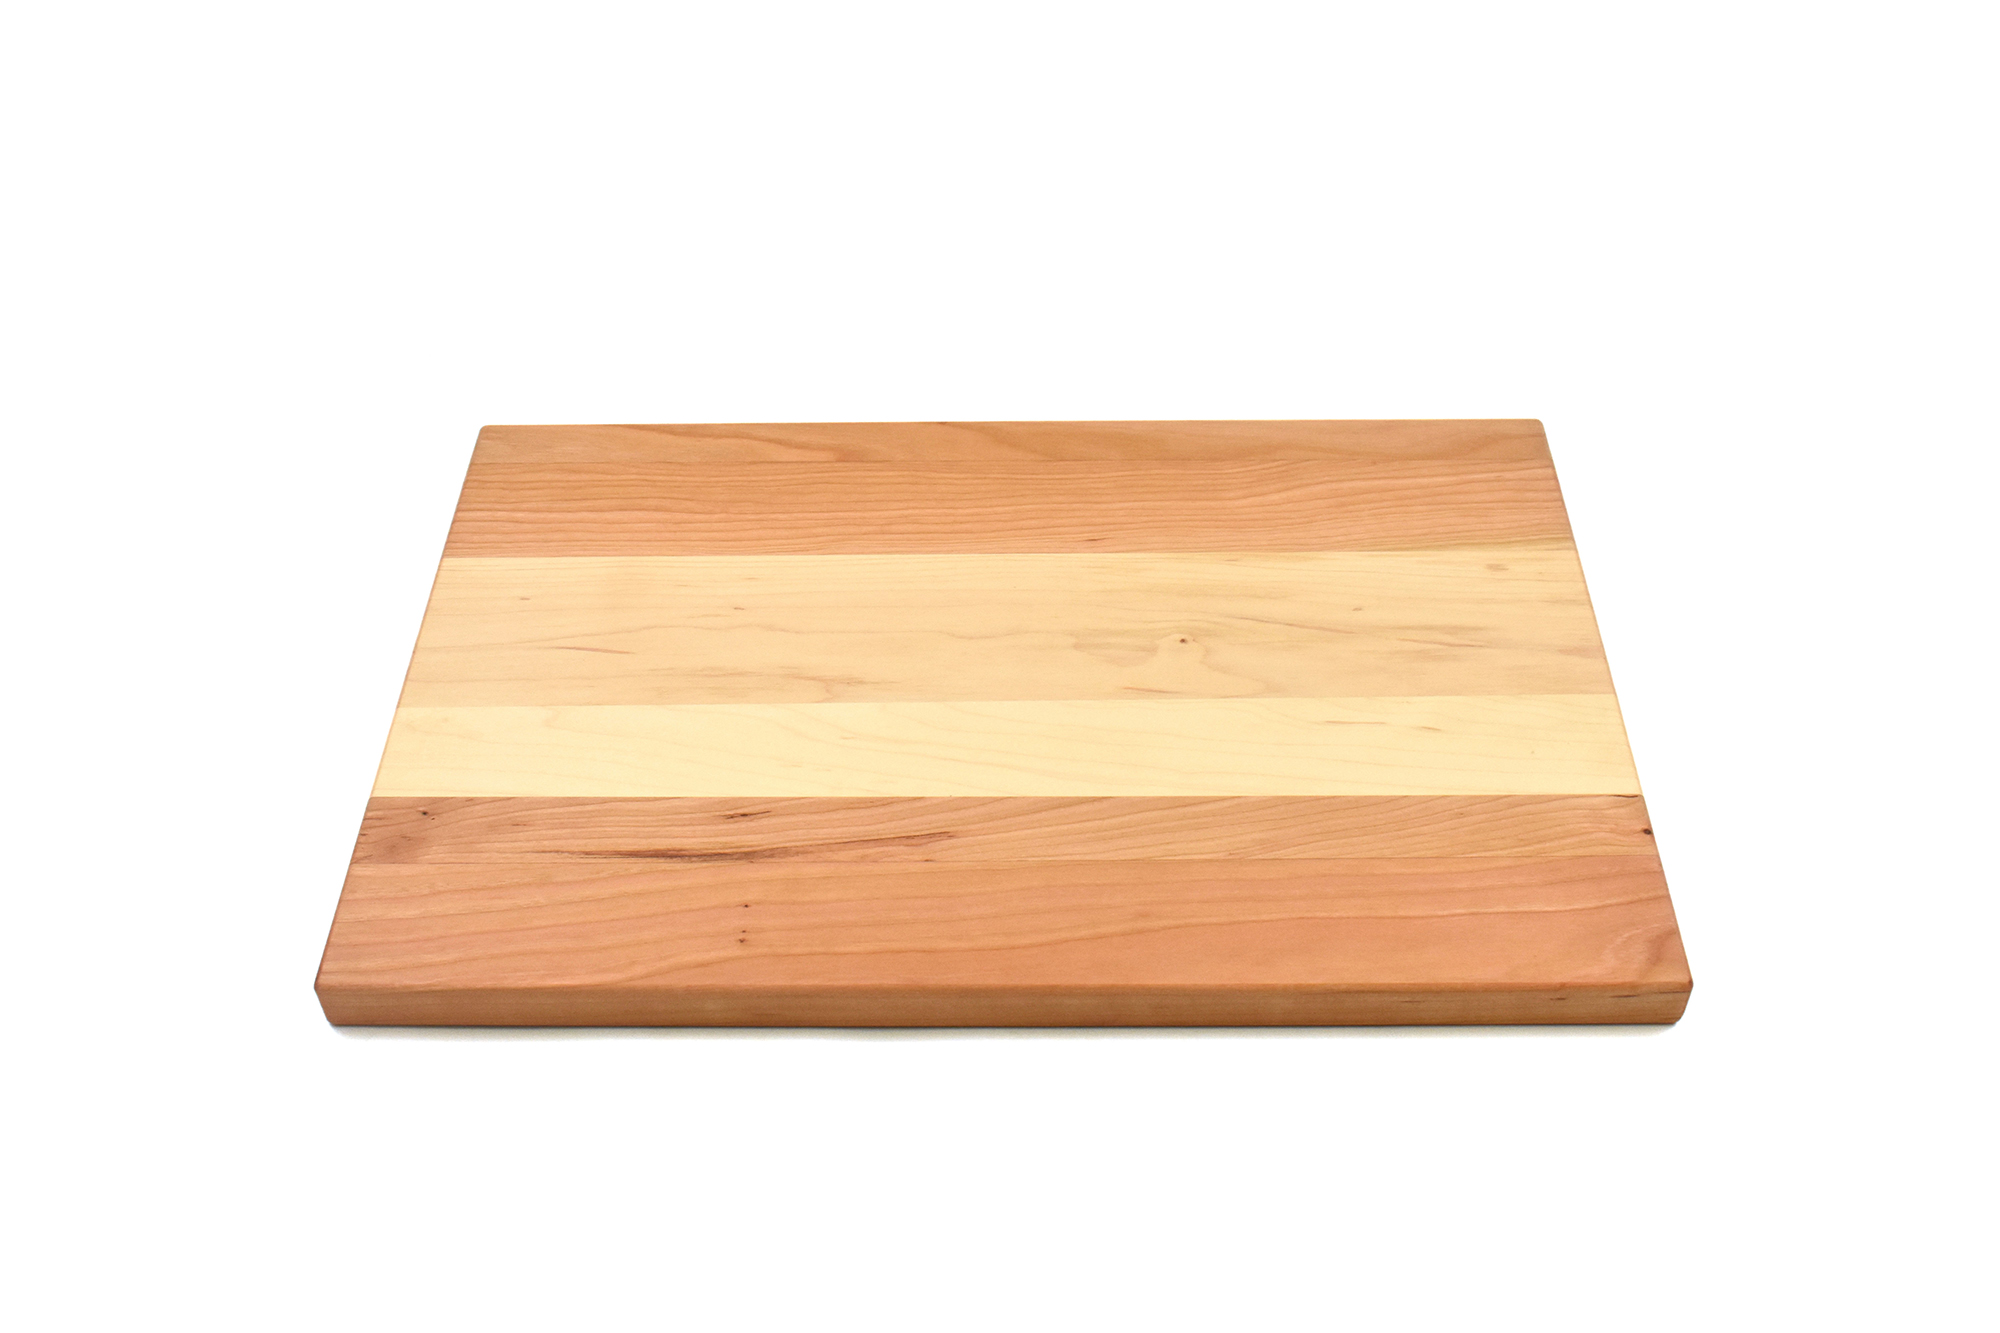 Large multi wood species cutting board with maple in the middle